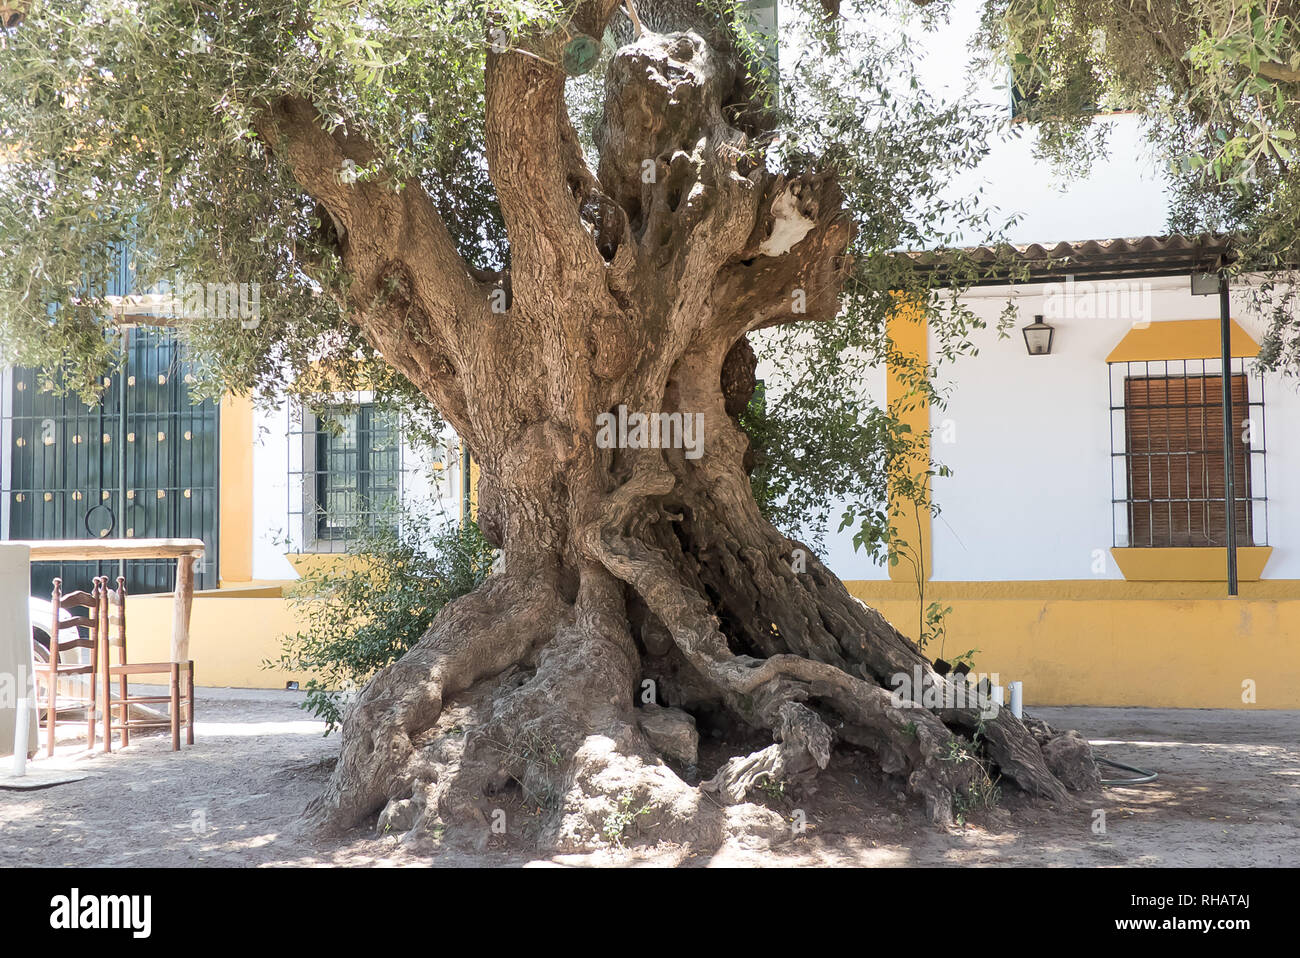 Huelva Province in Spain: an ancient Olive tree in the town of El Rocio. - Stock Image